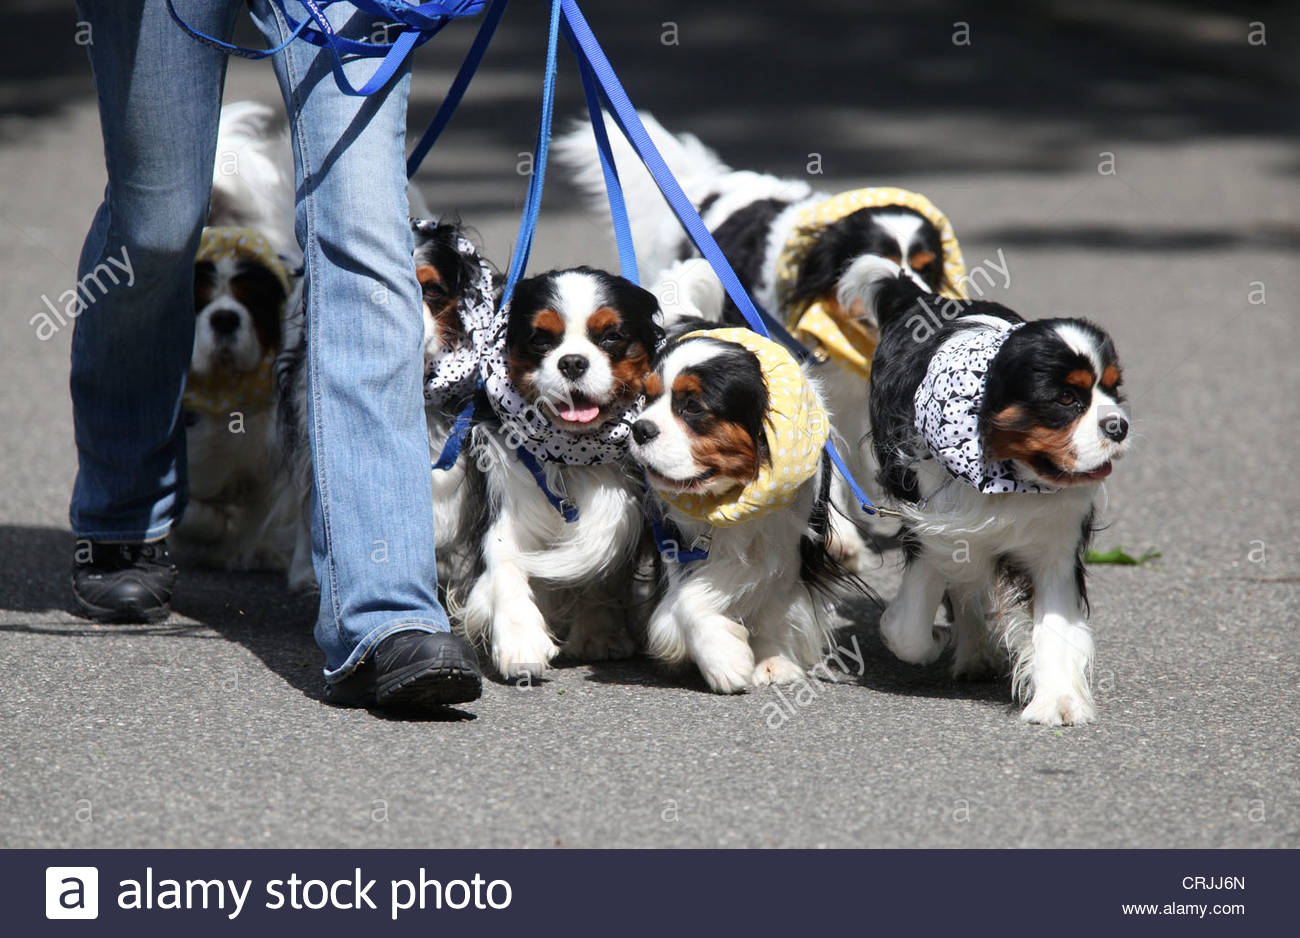 Image result for dog walking stock photo